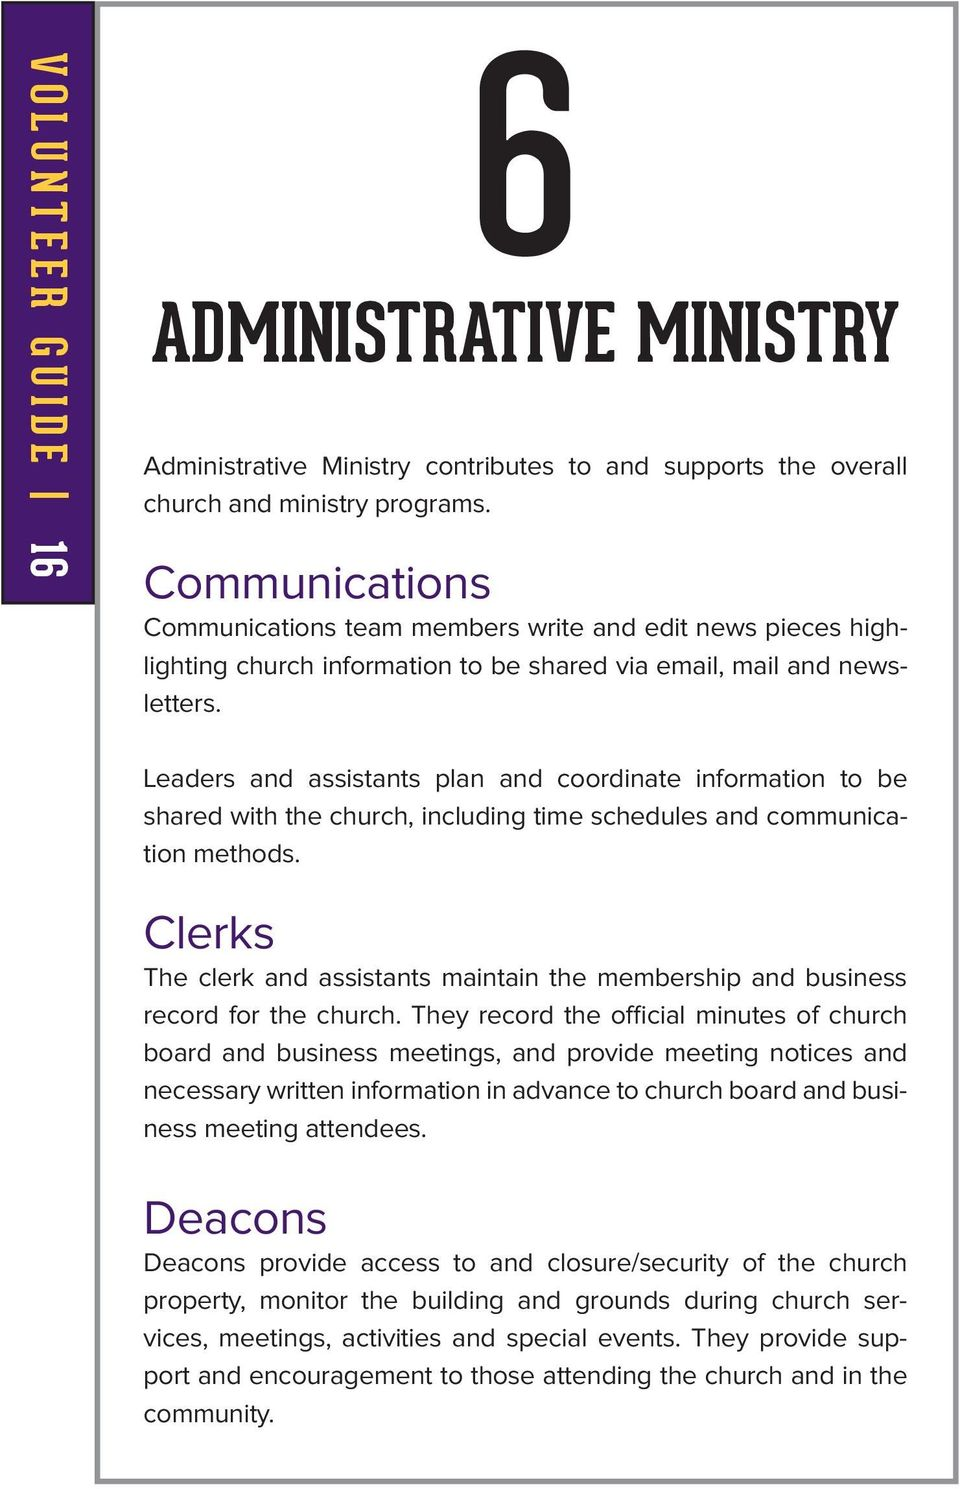 Leaders and assistants plan and coordinate information to be shared with the church, including time schedules and communication methods.